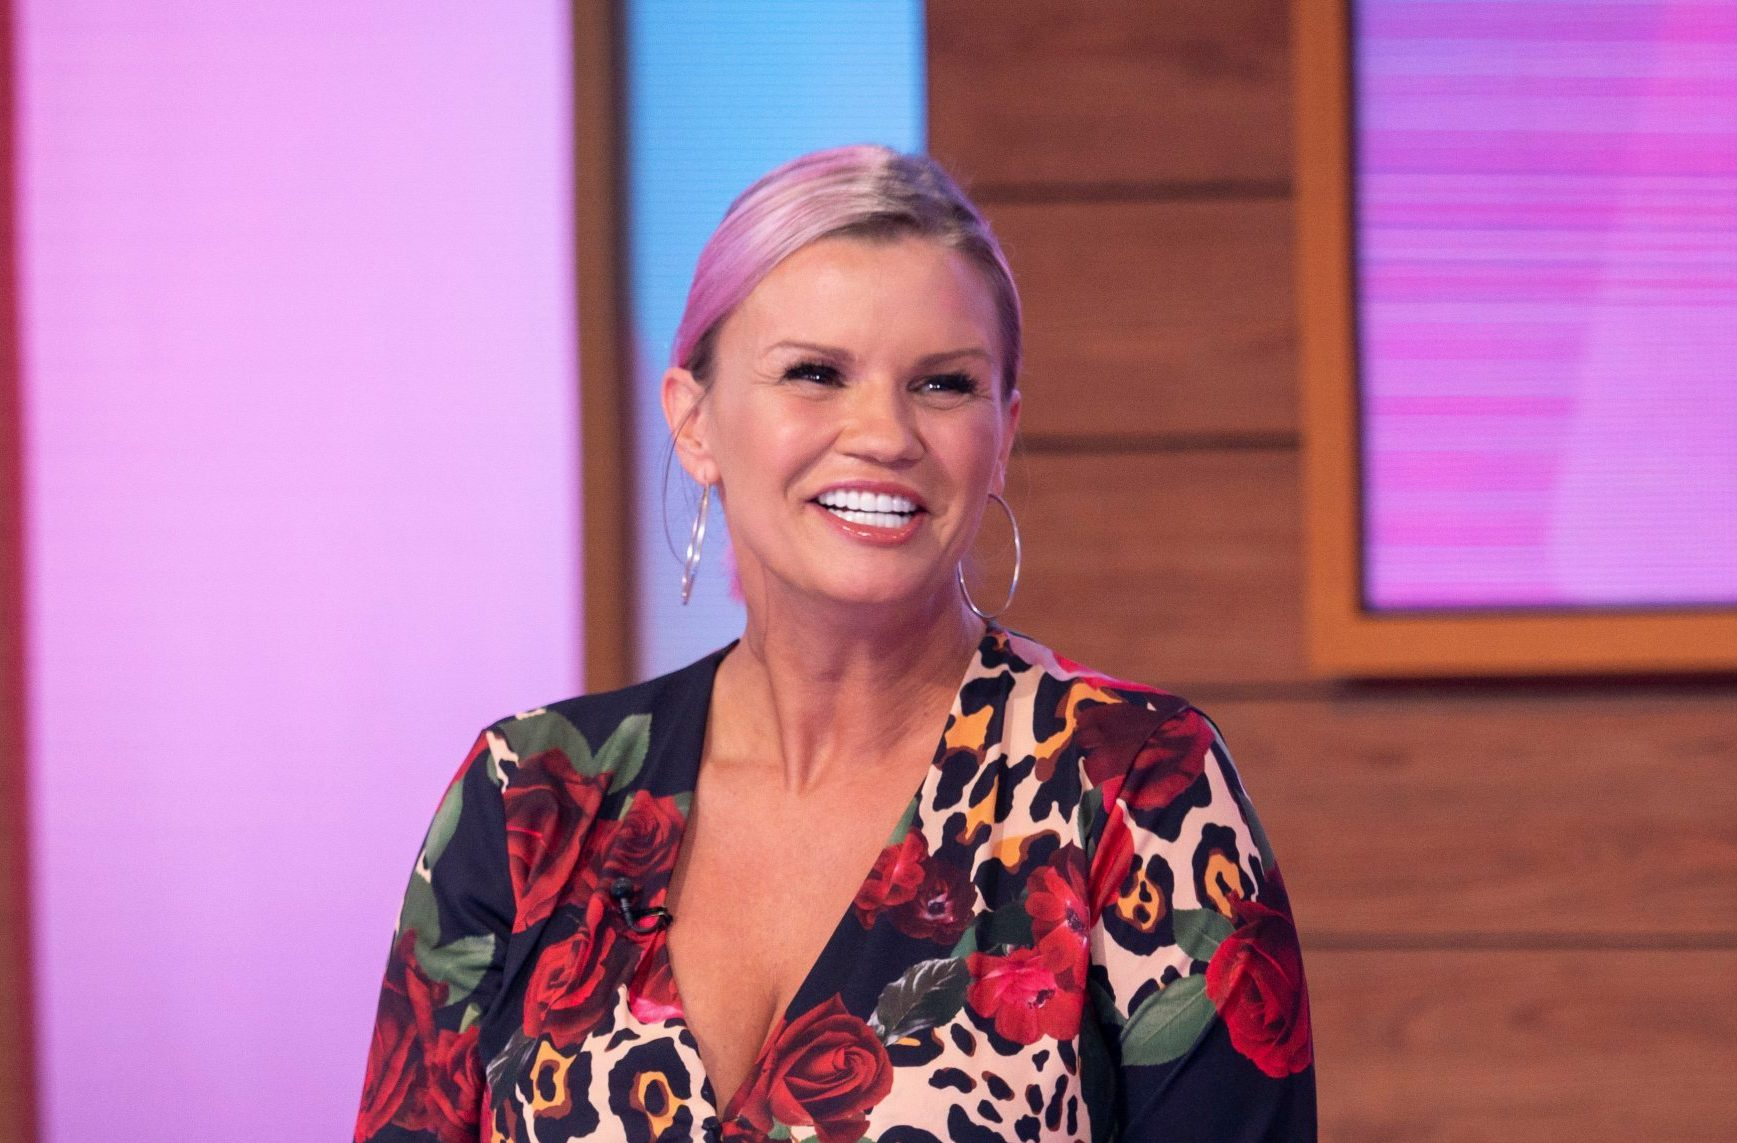 """Editorial use only Mandatory Credit: Photo by S Meddle/ITV/REX (10109695l) Kerry Katona 'Loose Women' TV show, London, UK - 18 Feb 2019 CELEBRITY GUEST: KERRY KATONA- """"I WILL NEVER MARRY AGAIN!"""" She was one third of iconic pop band ?Atomic Kitten? and now Kerry?s back on our screens, hoping to find her ?Eternal Flame? as part of the new series of ?Celebs Go Dating?! Kerry Katona is the latest single celebrity to join the lineup of stars looking for love as part of the sixth series of the E4 dating show. Kerry joins us to talk dating disasters, body transformations and mentoring her fellow celebrities."""